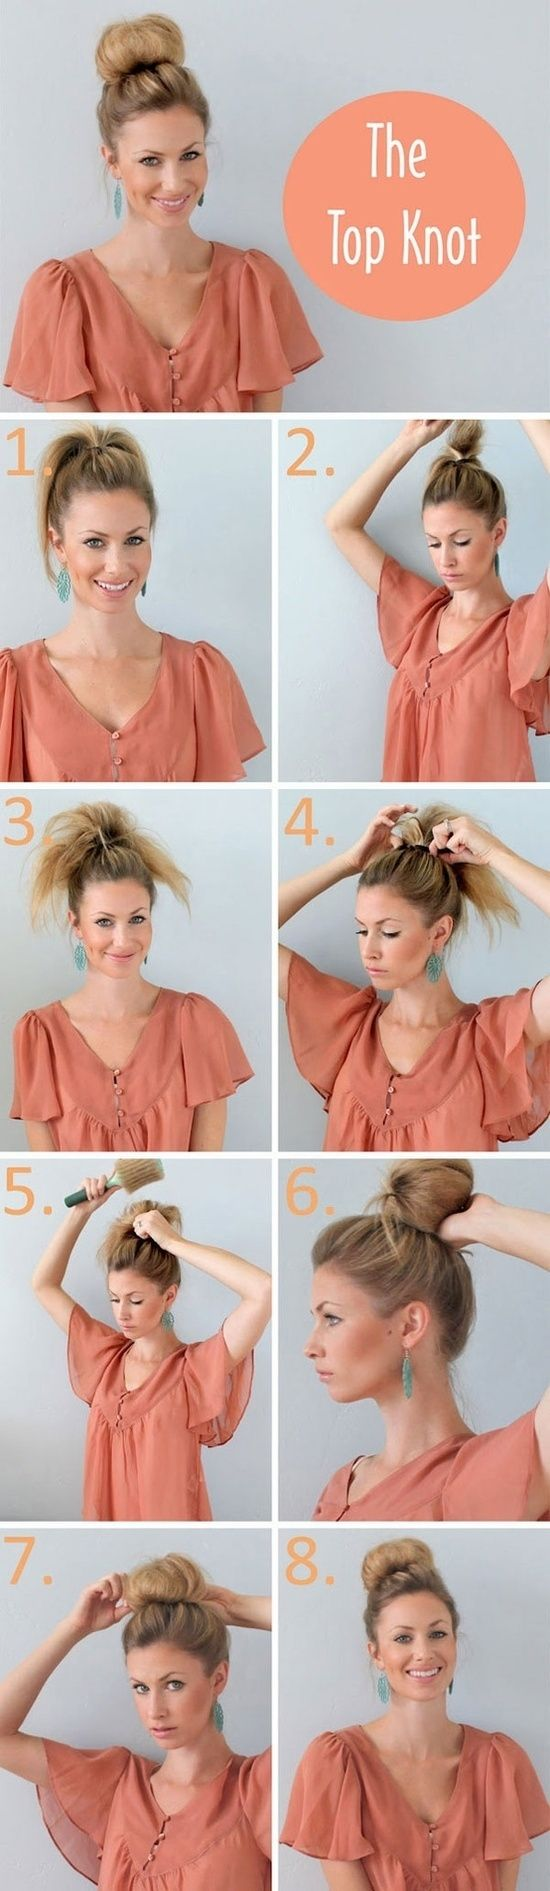 the top knot tutorial guide